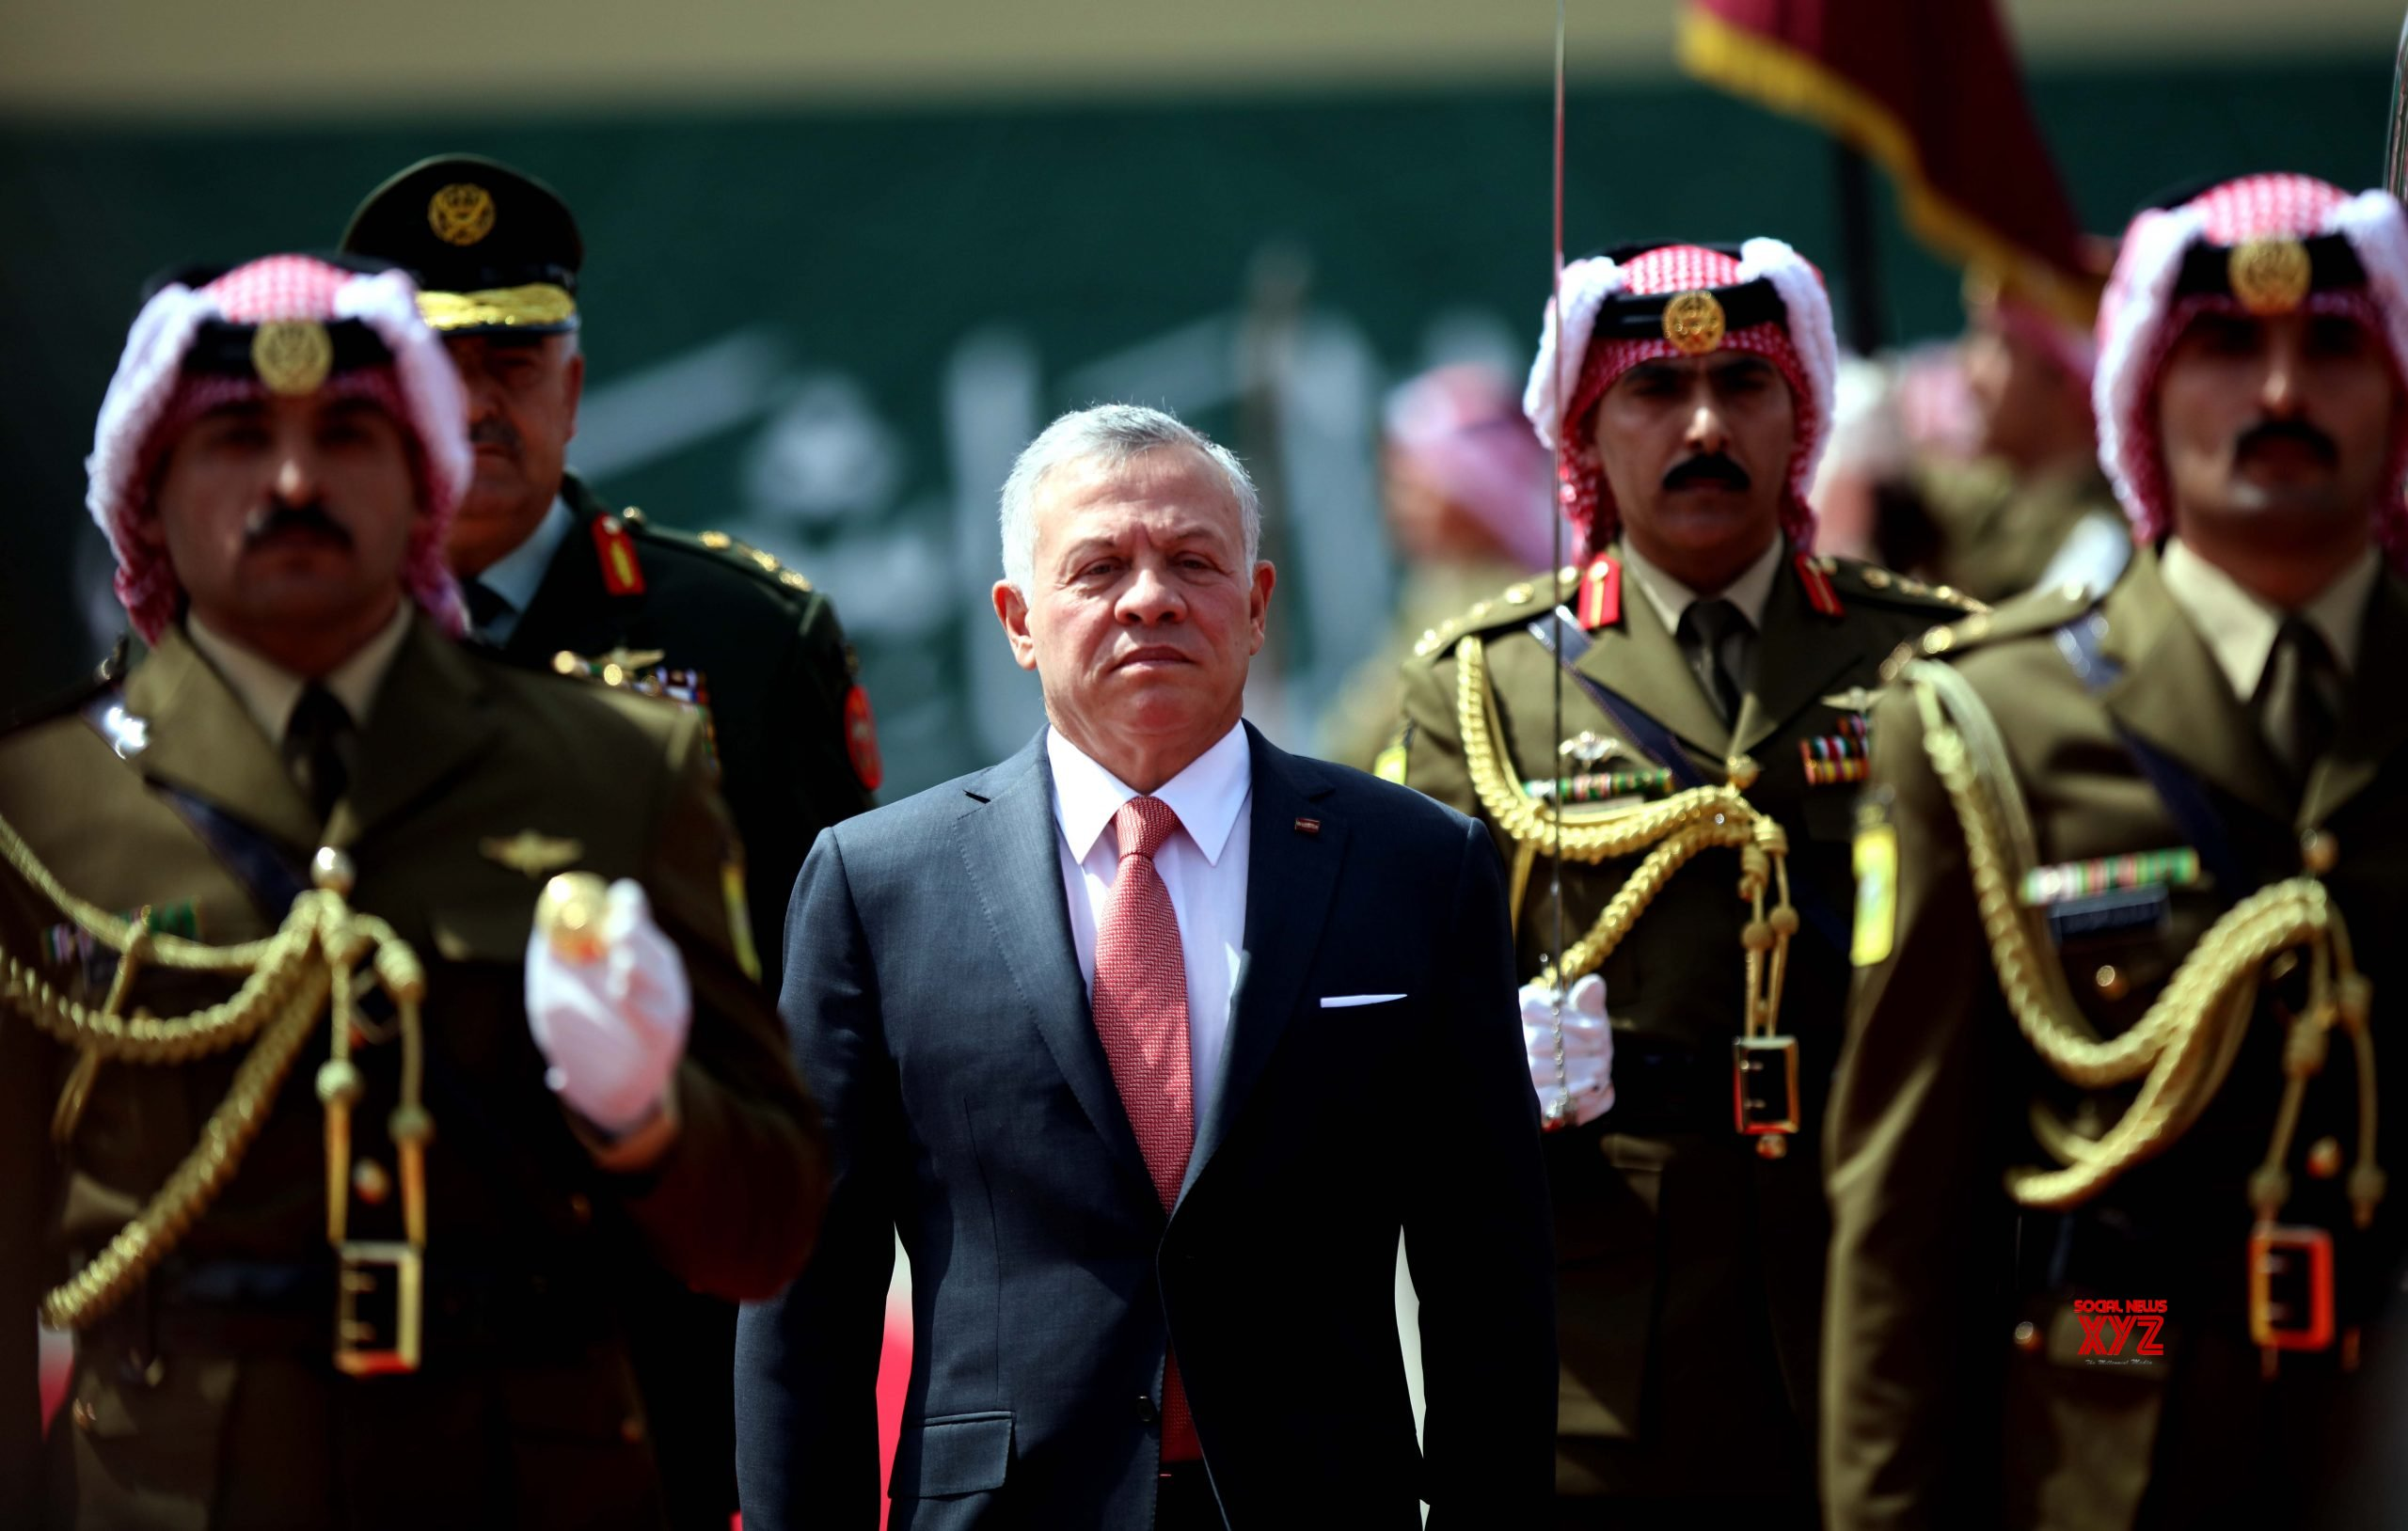 Jordan's King says Prince Hamzah in his care